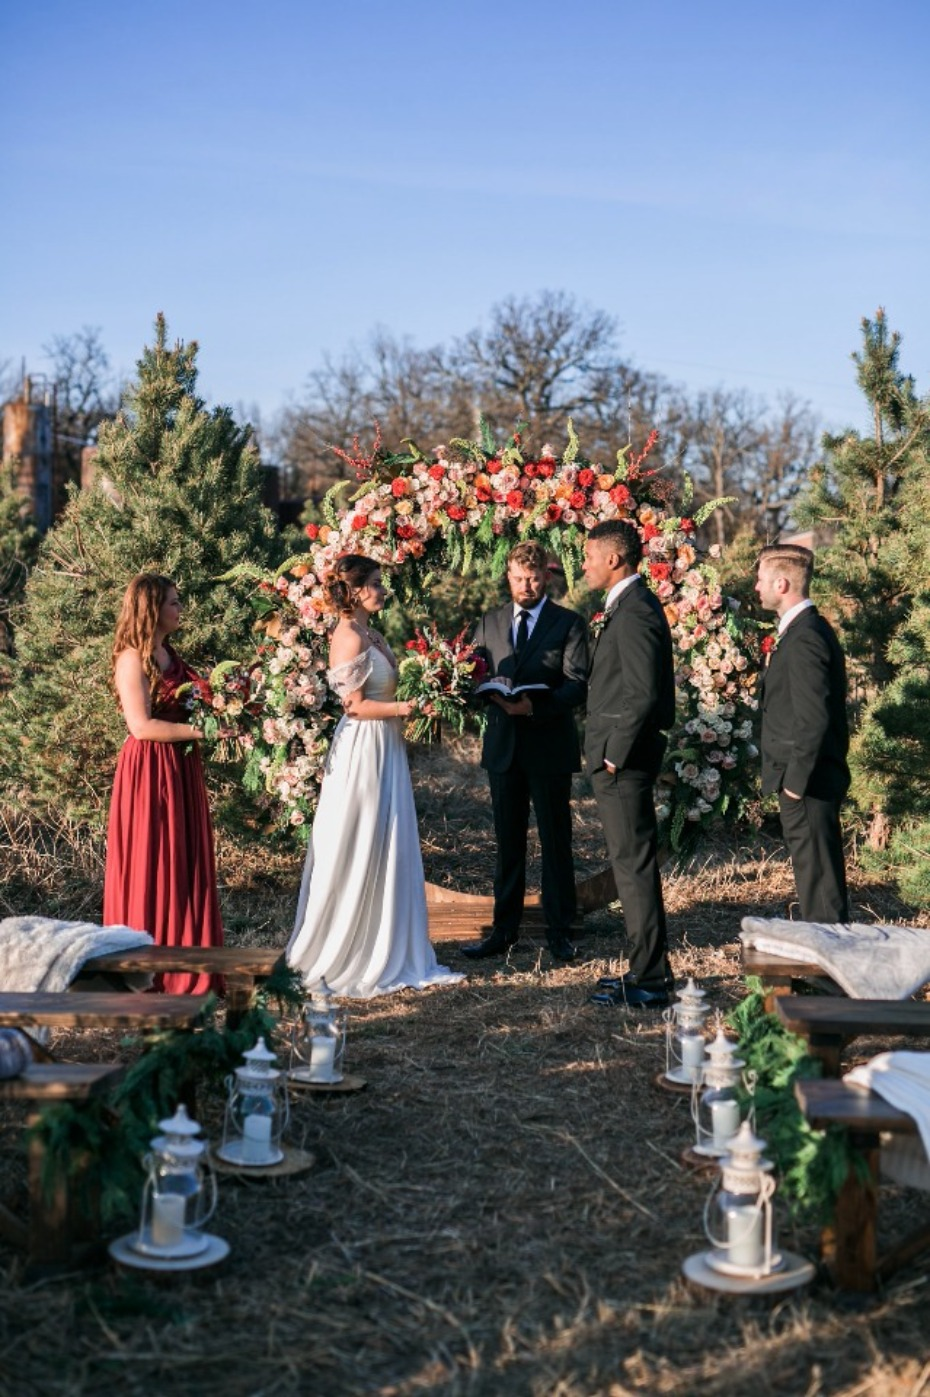 summer weddings are nice but this winter wedding is full of spice